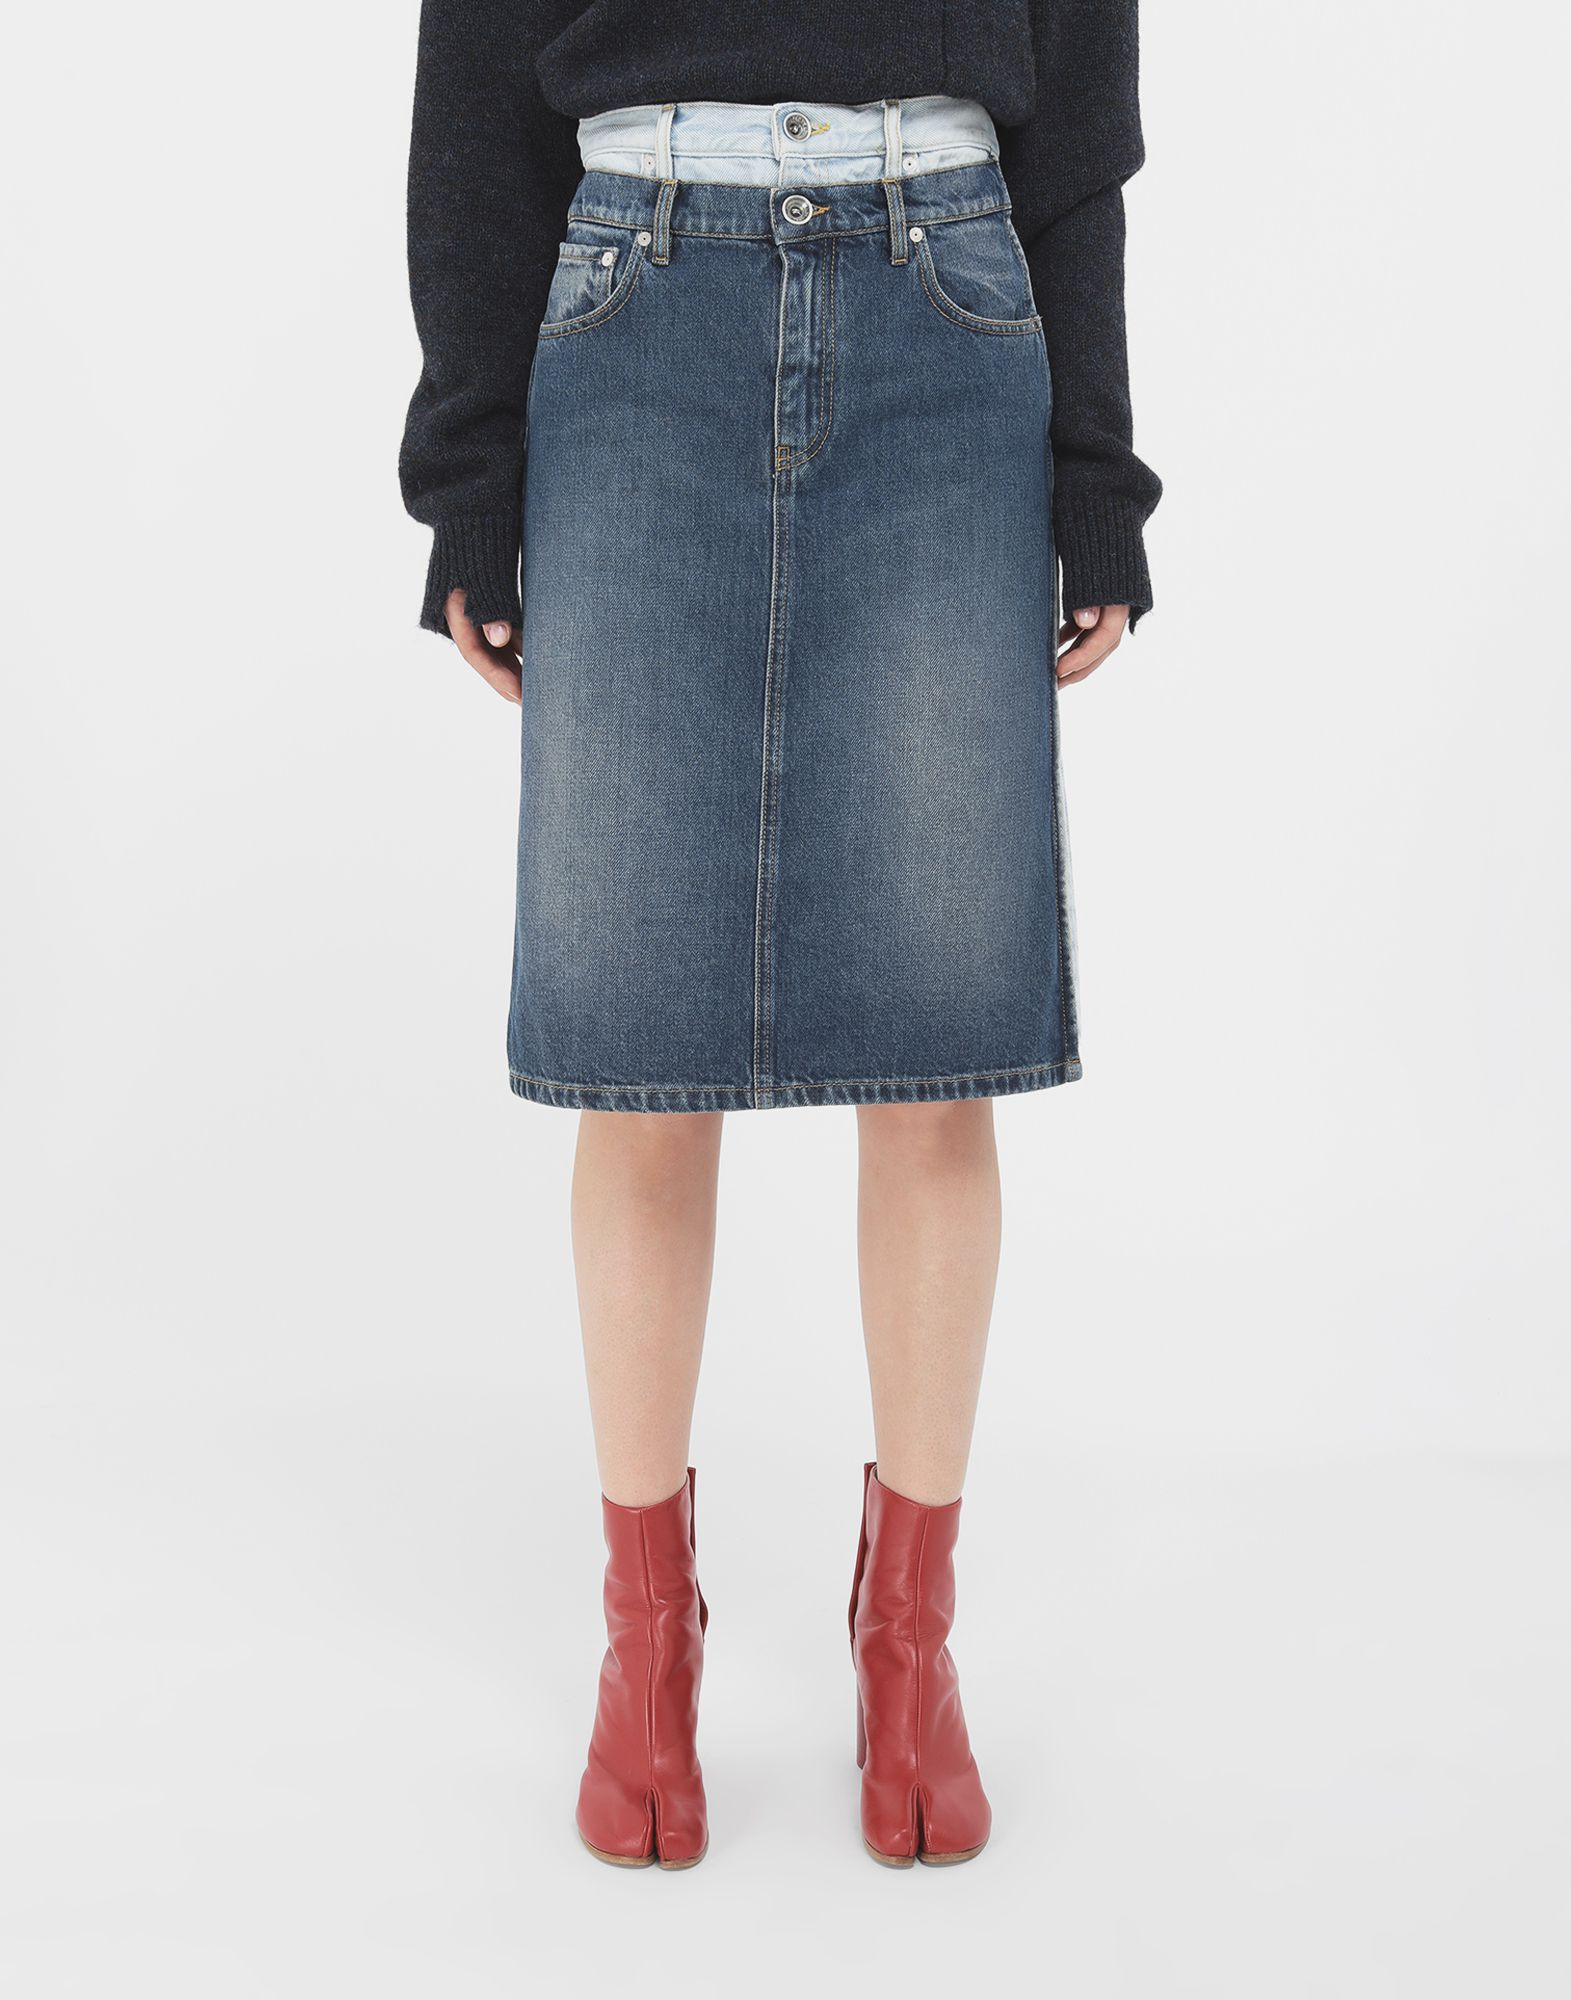 MAISON MARGIELA Spliced skirt 3/4 length skirt Woman r